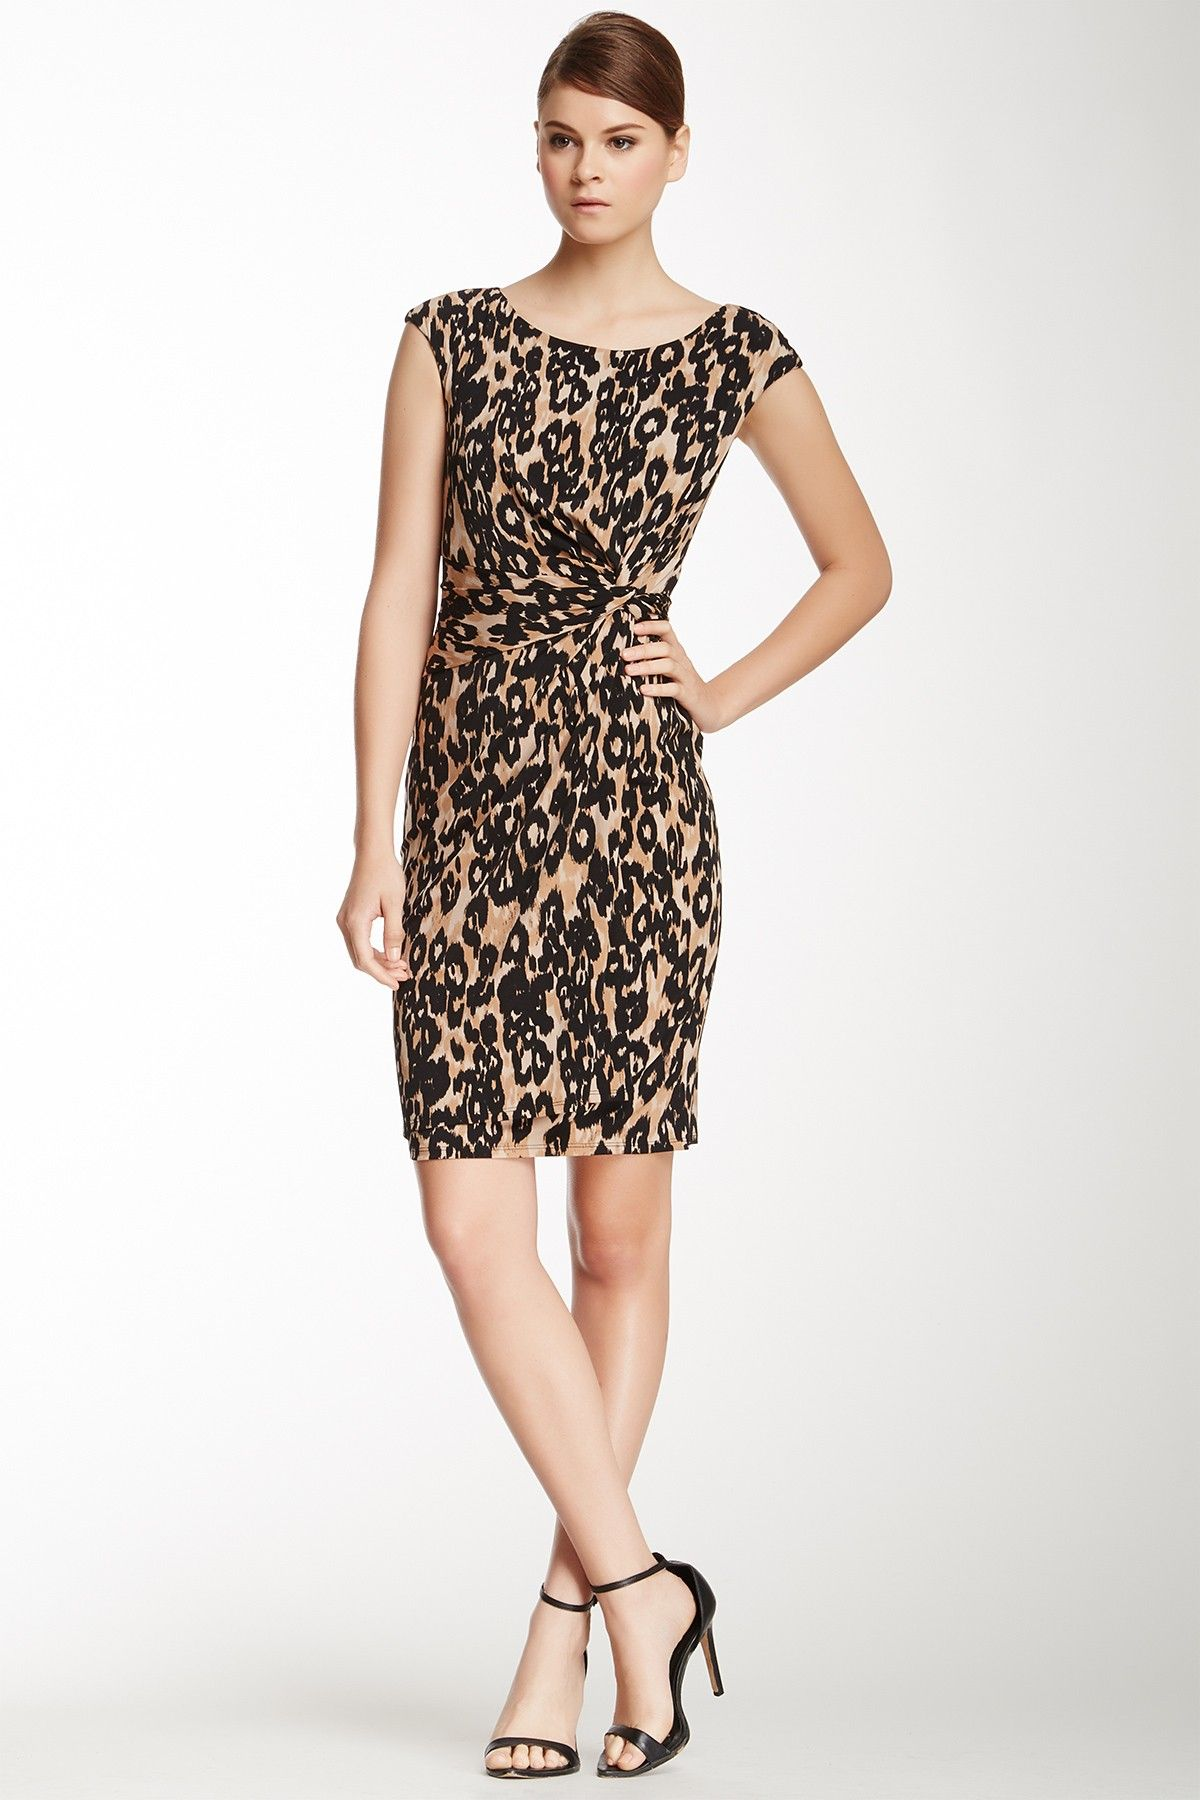 Anne klein leopard knot front dress animal inspired pinterest